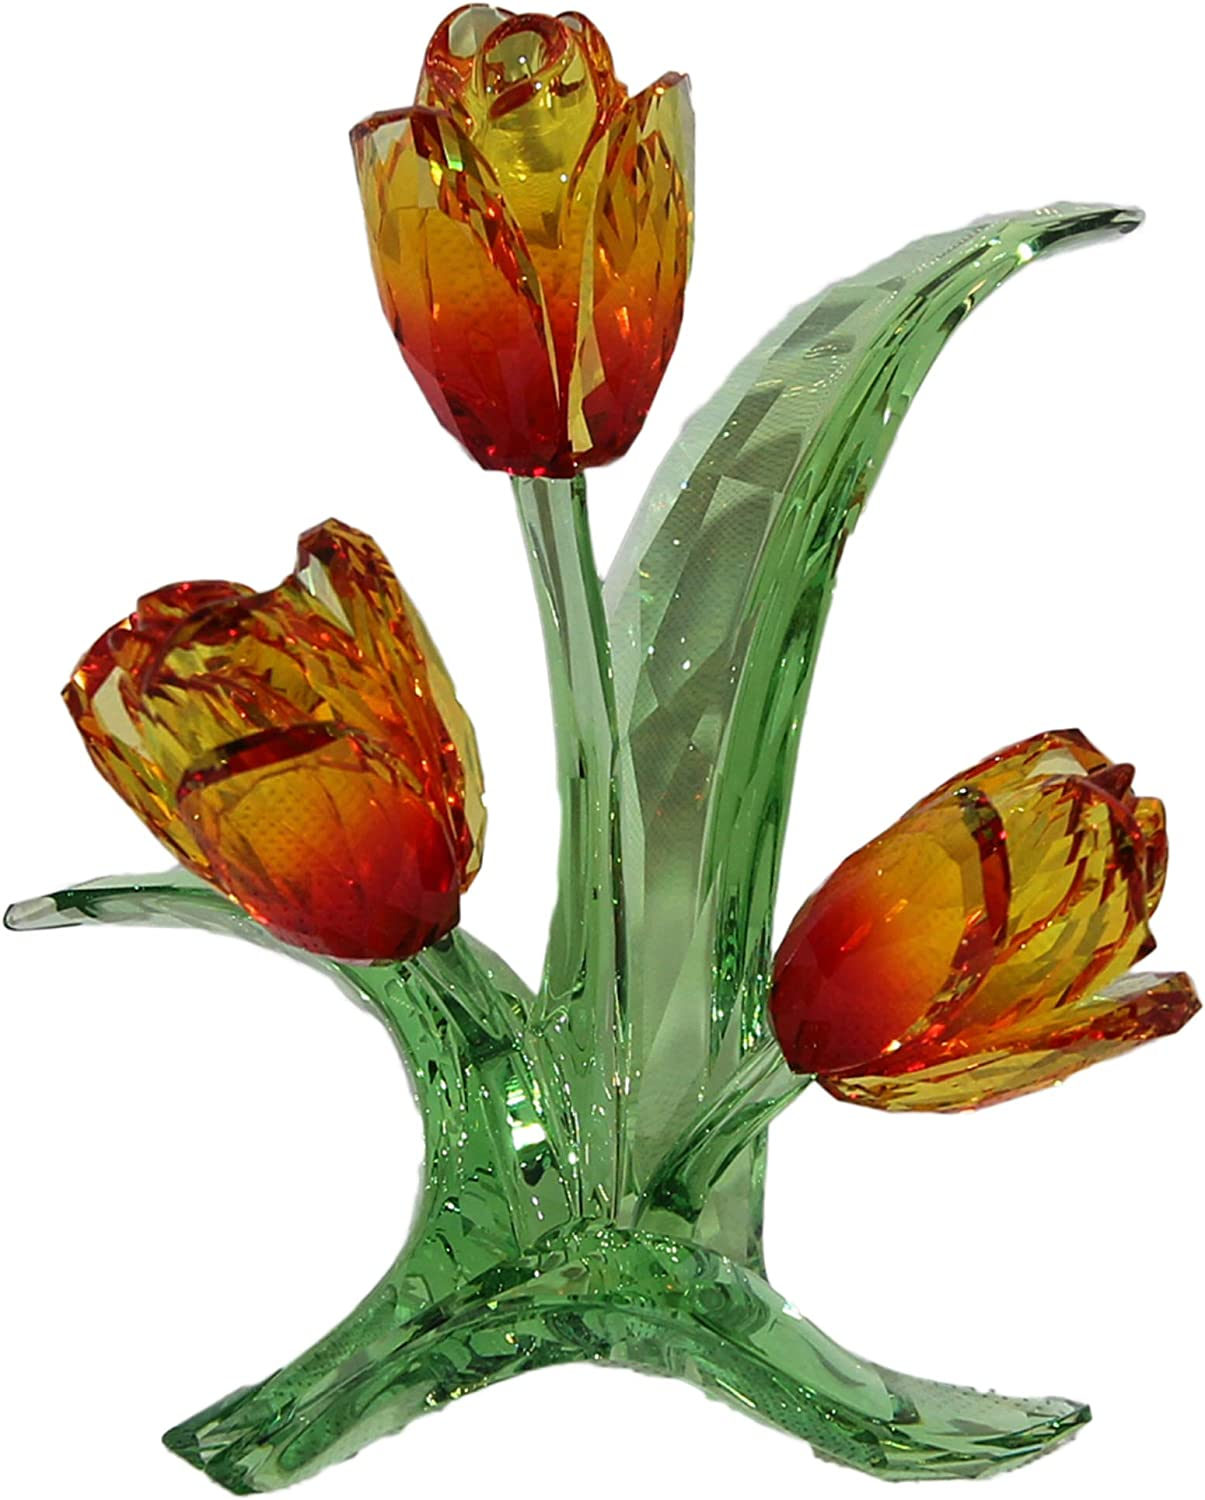 SWAROVSKI Crystal Authentic Crystal Flowers, Tulips - Beautiful Flower Figurine - Glass Ornament for Home Decoration